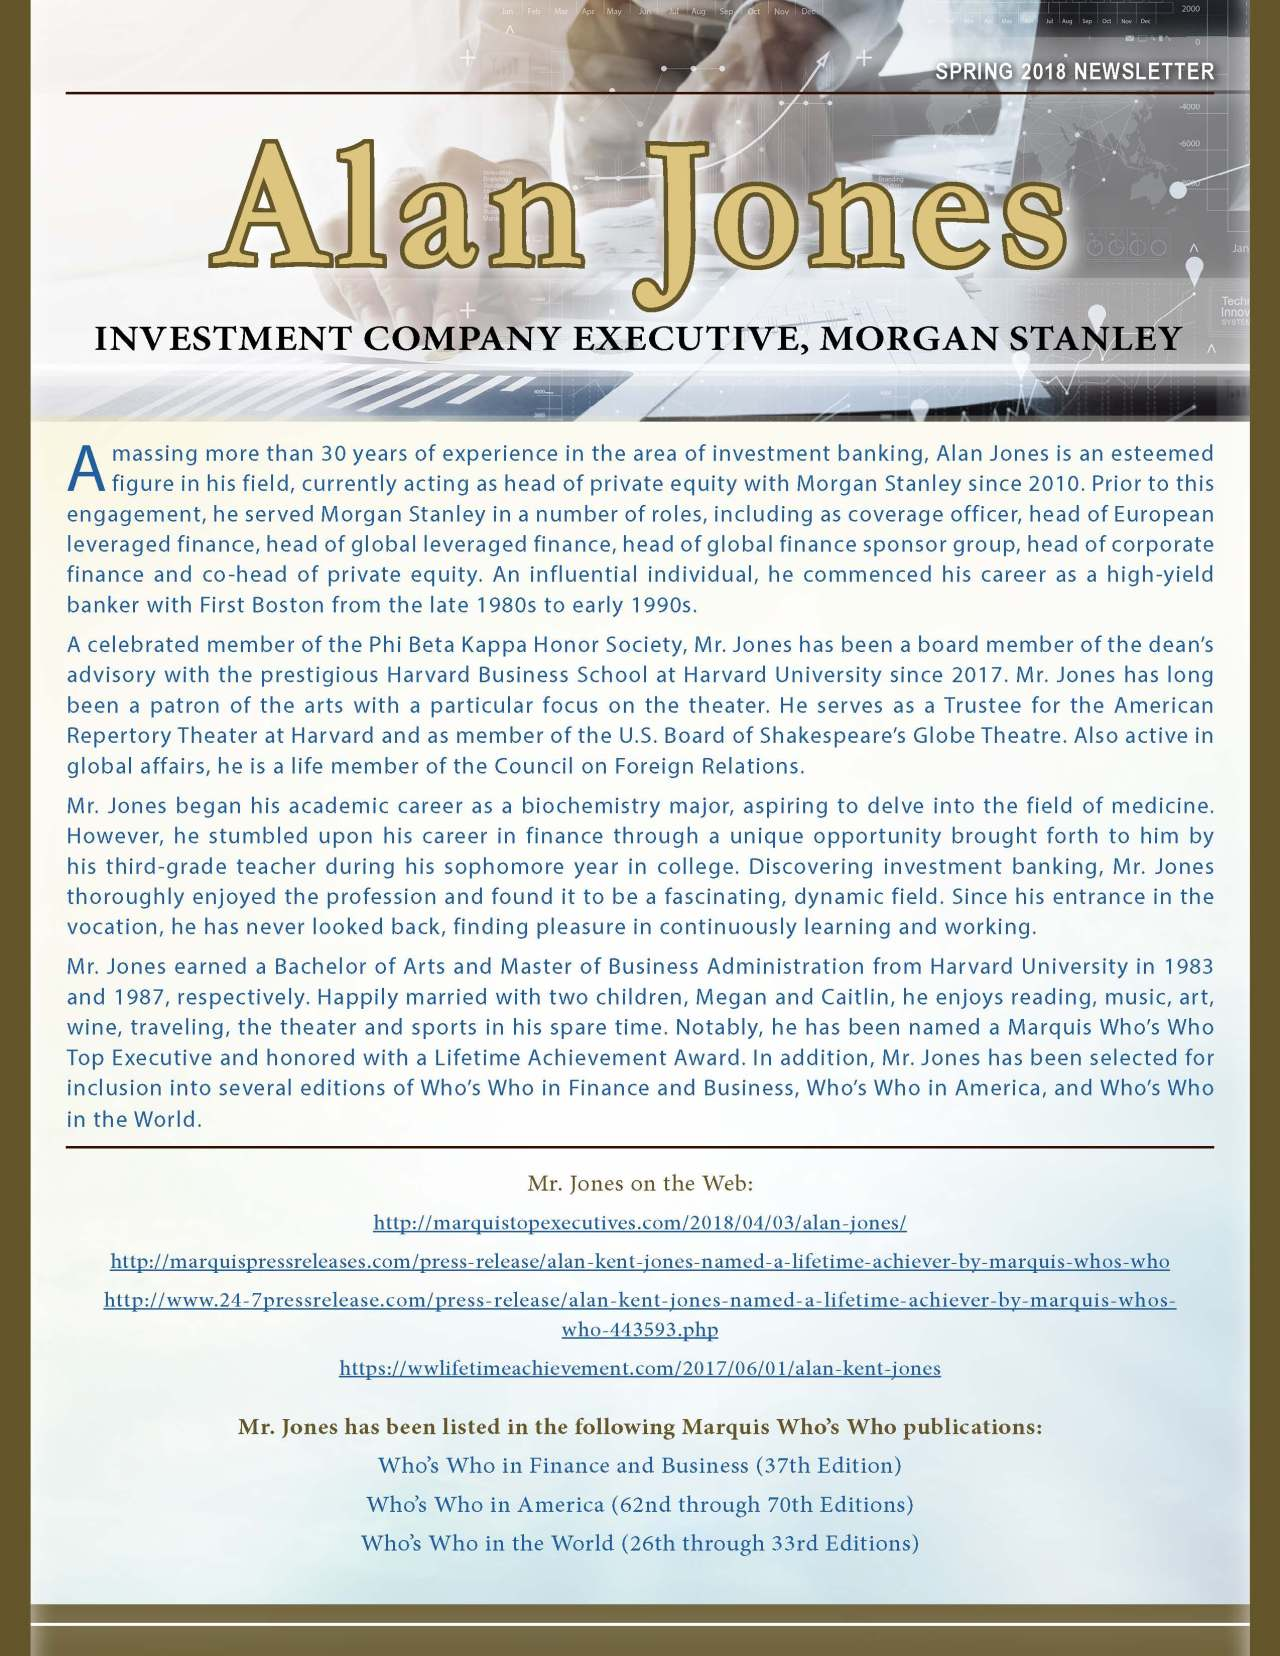 Jones, Alan 2156151_32820699 Newsletter REVISED